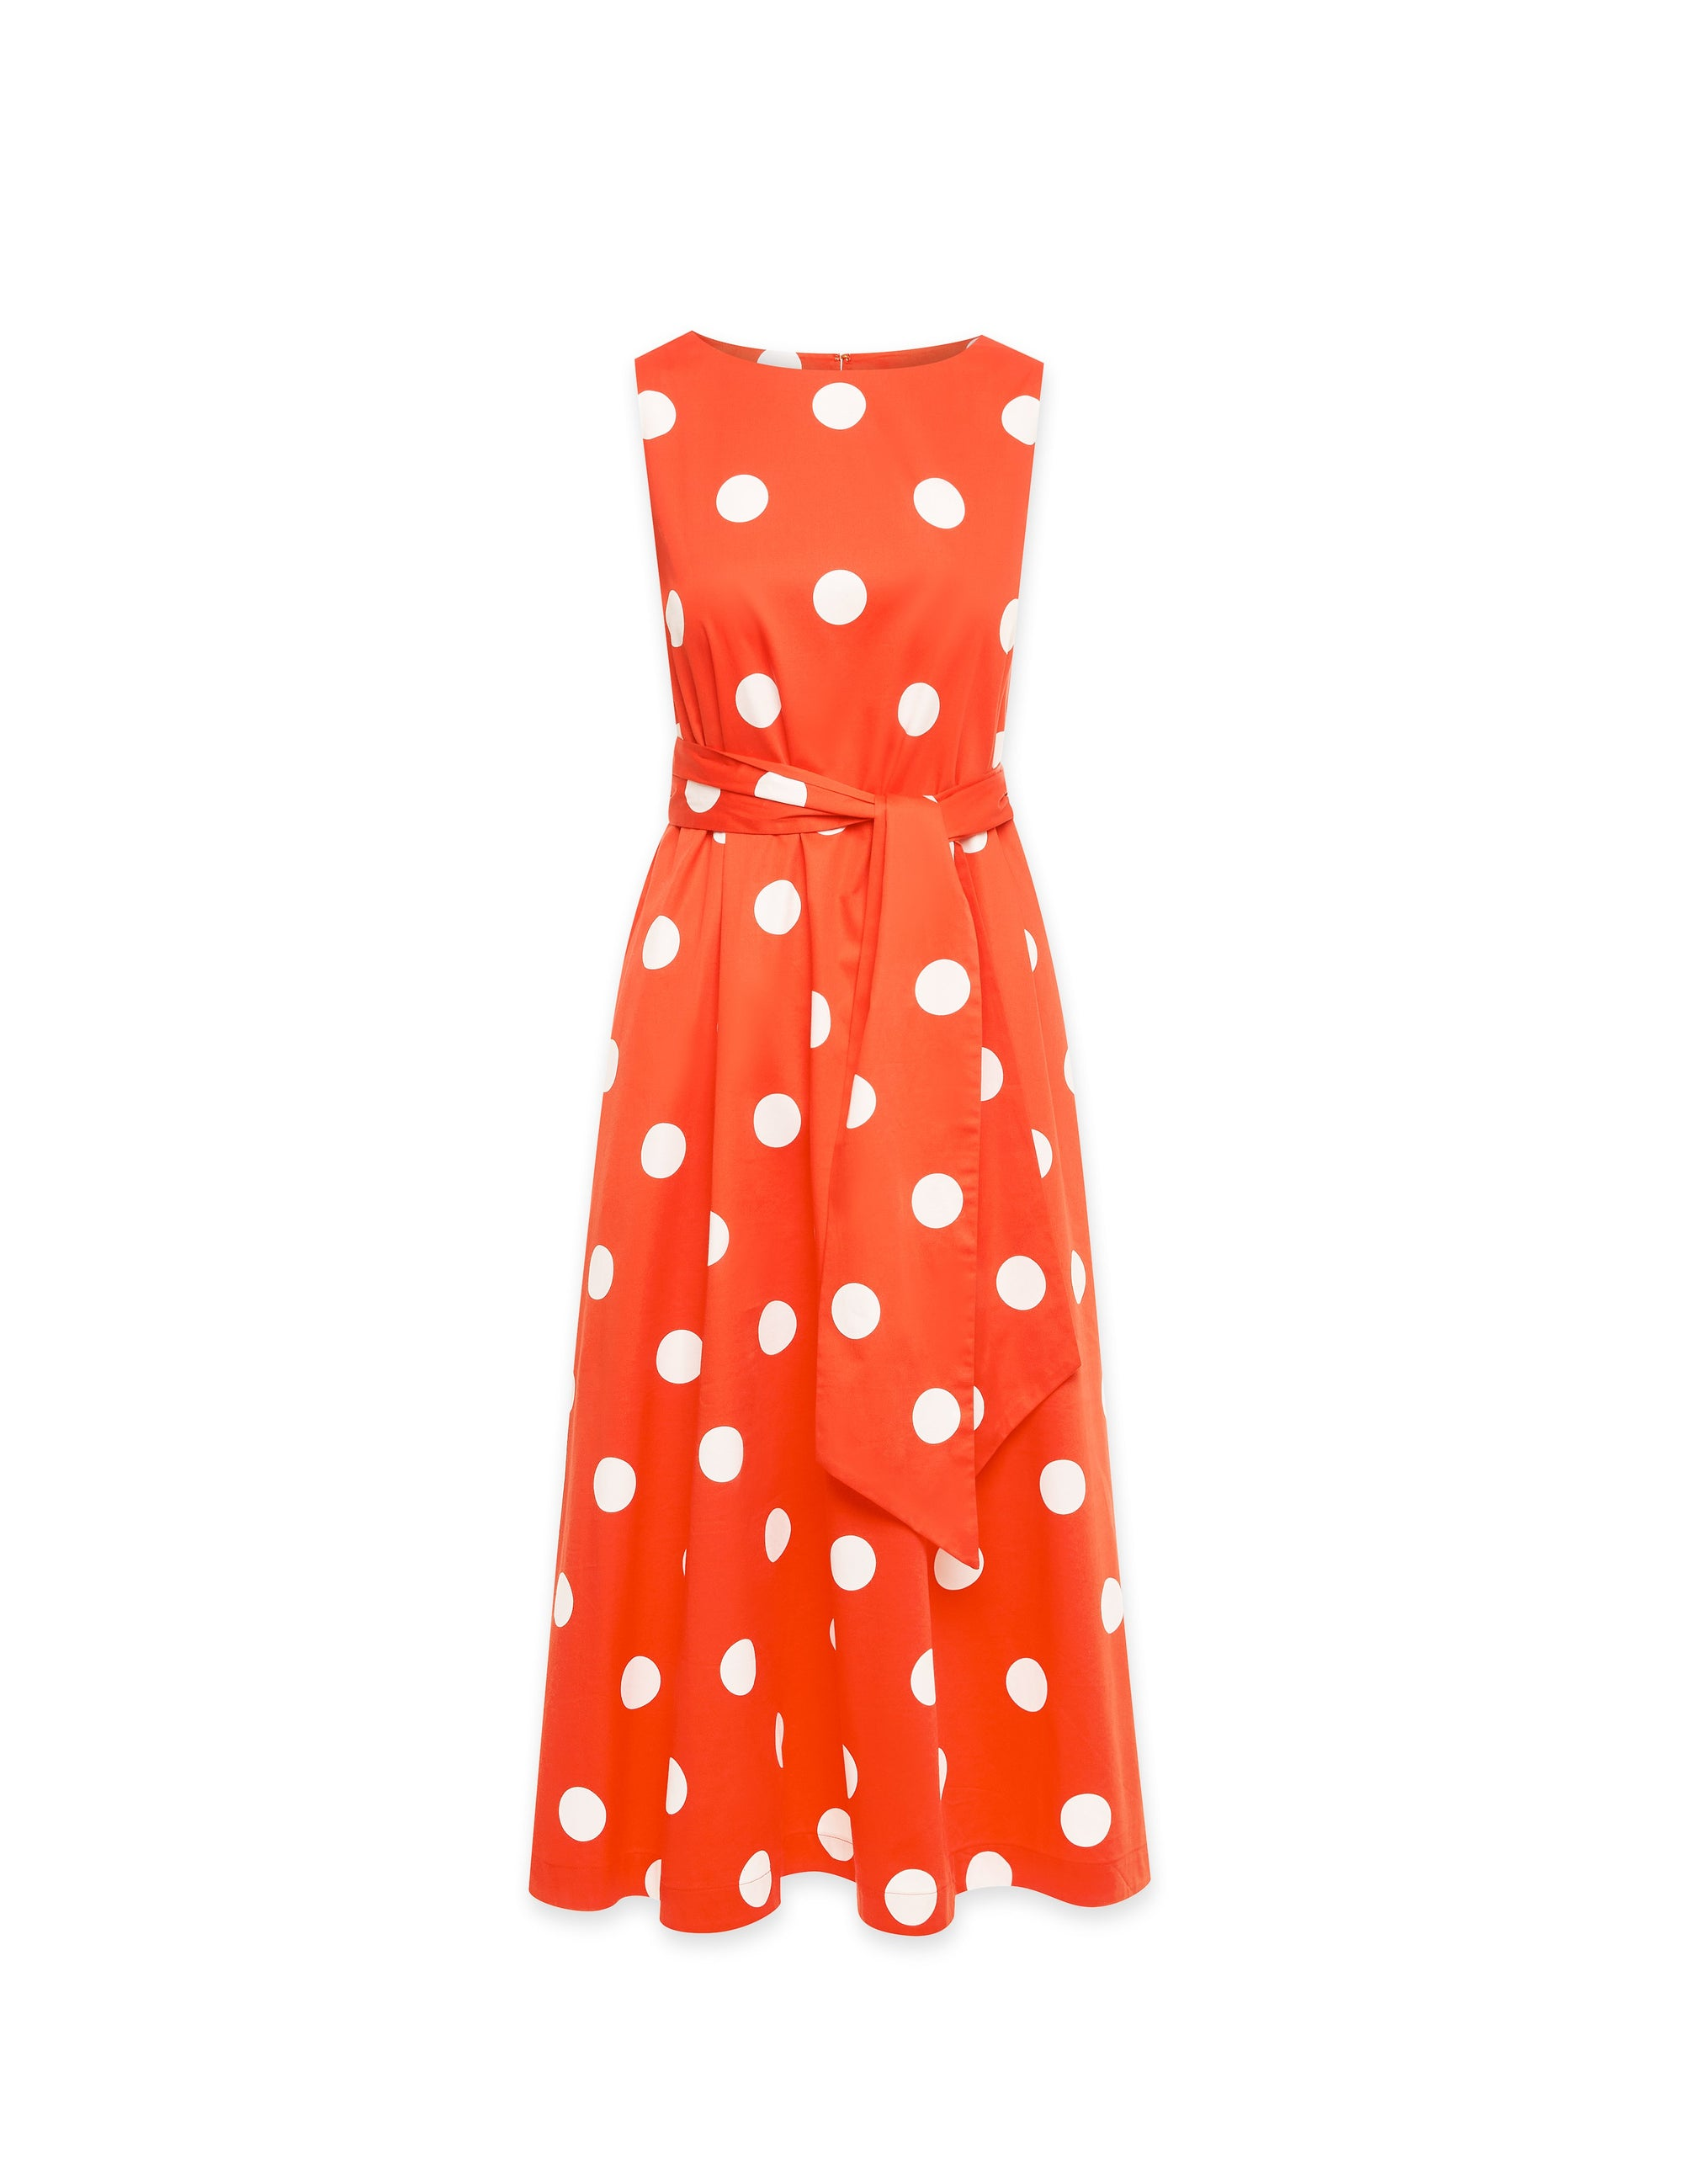 Anne Klein Deauville Dot Midi Dress With Attached Sash in Poppy/White